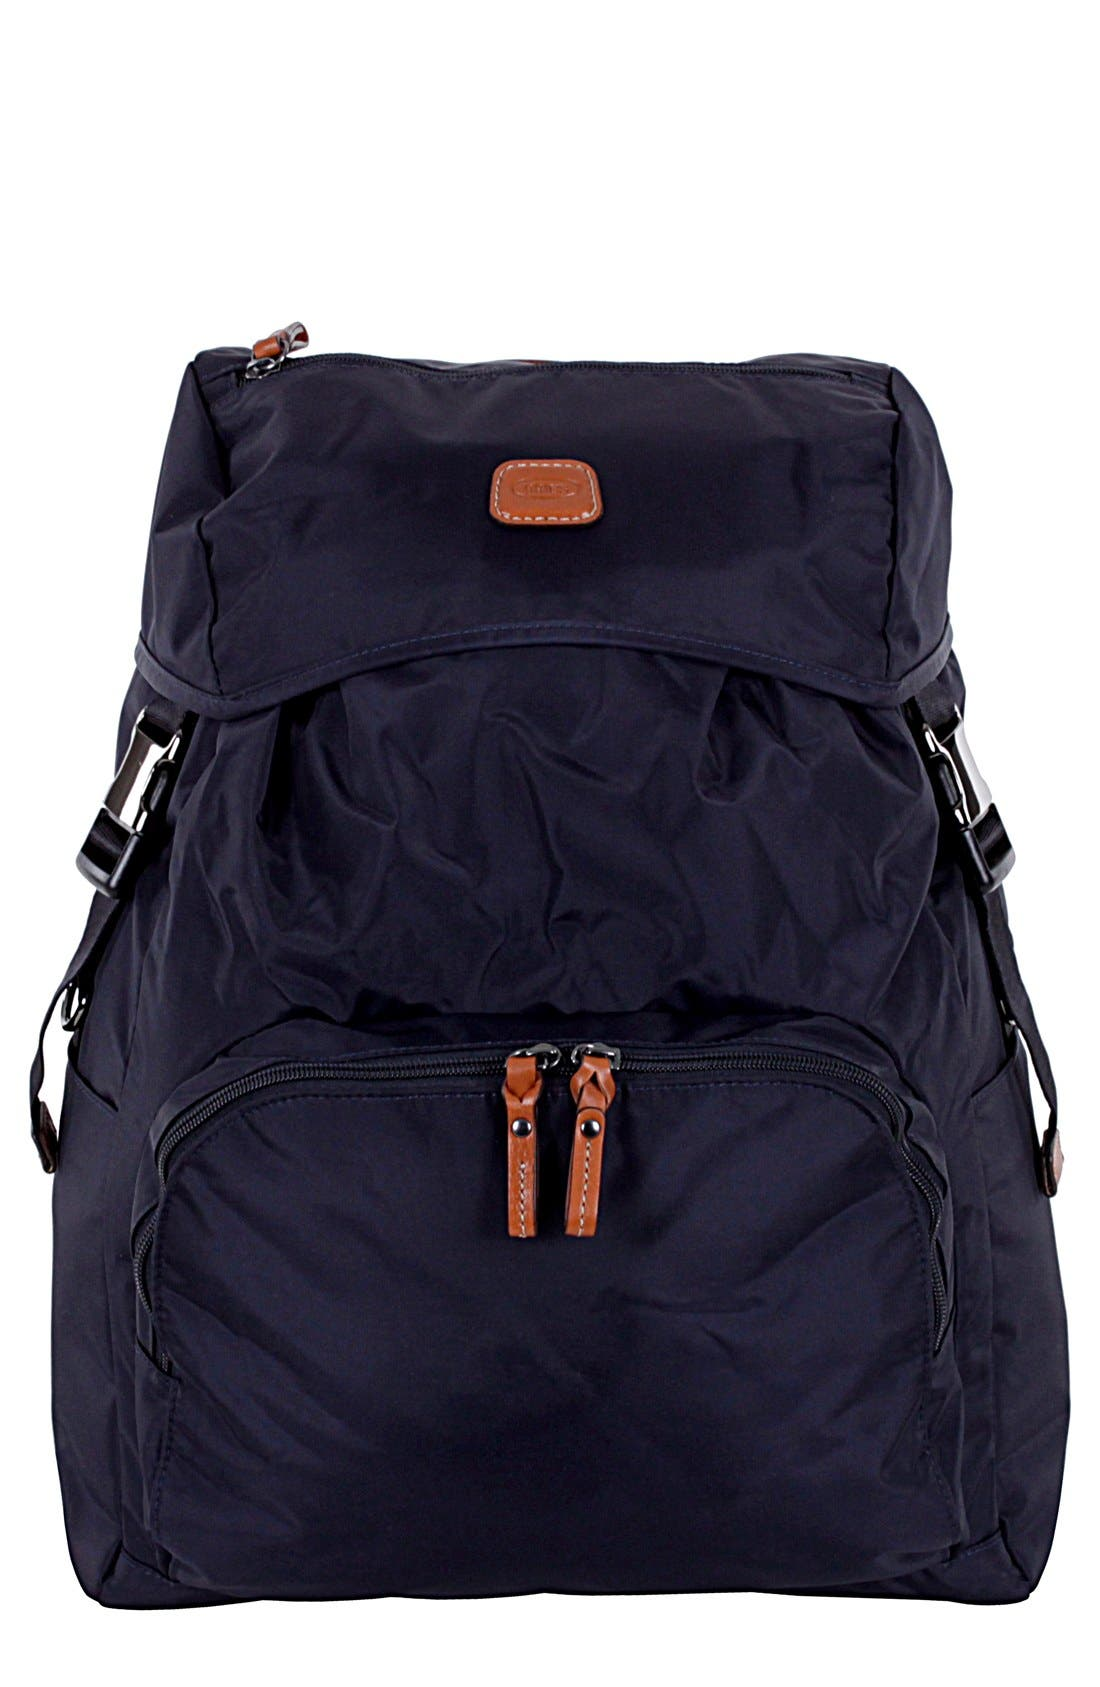 Bric's 'X-Bag Excursion' Backpack